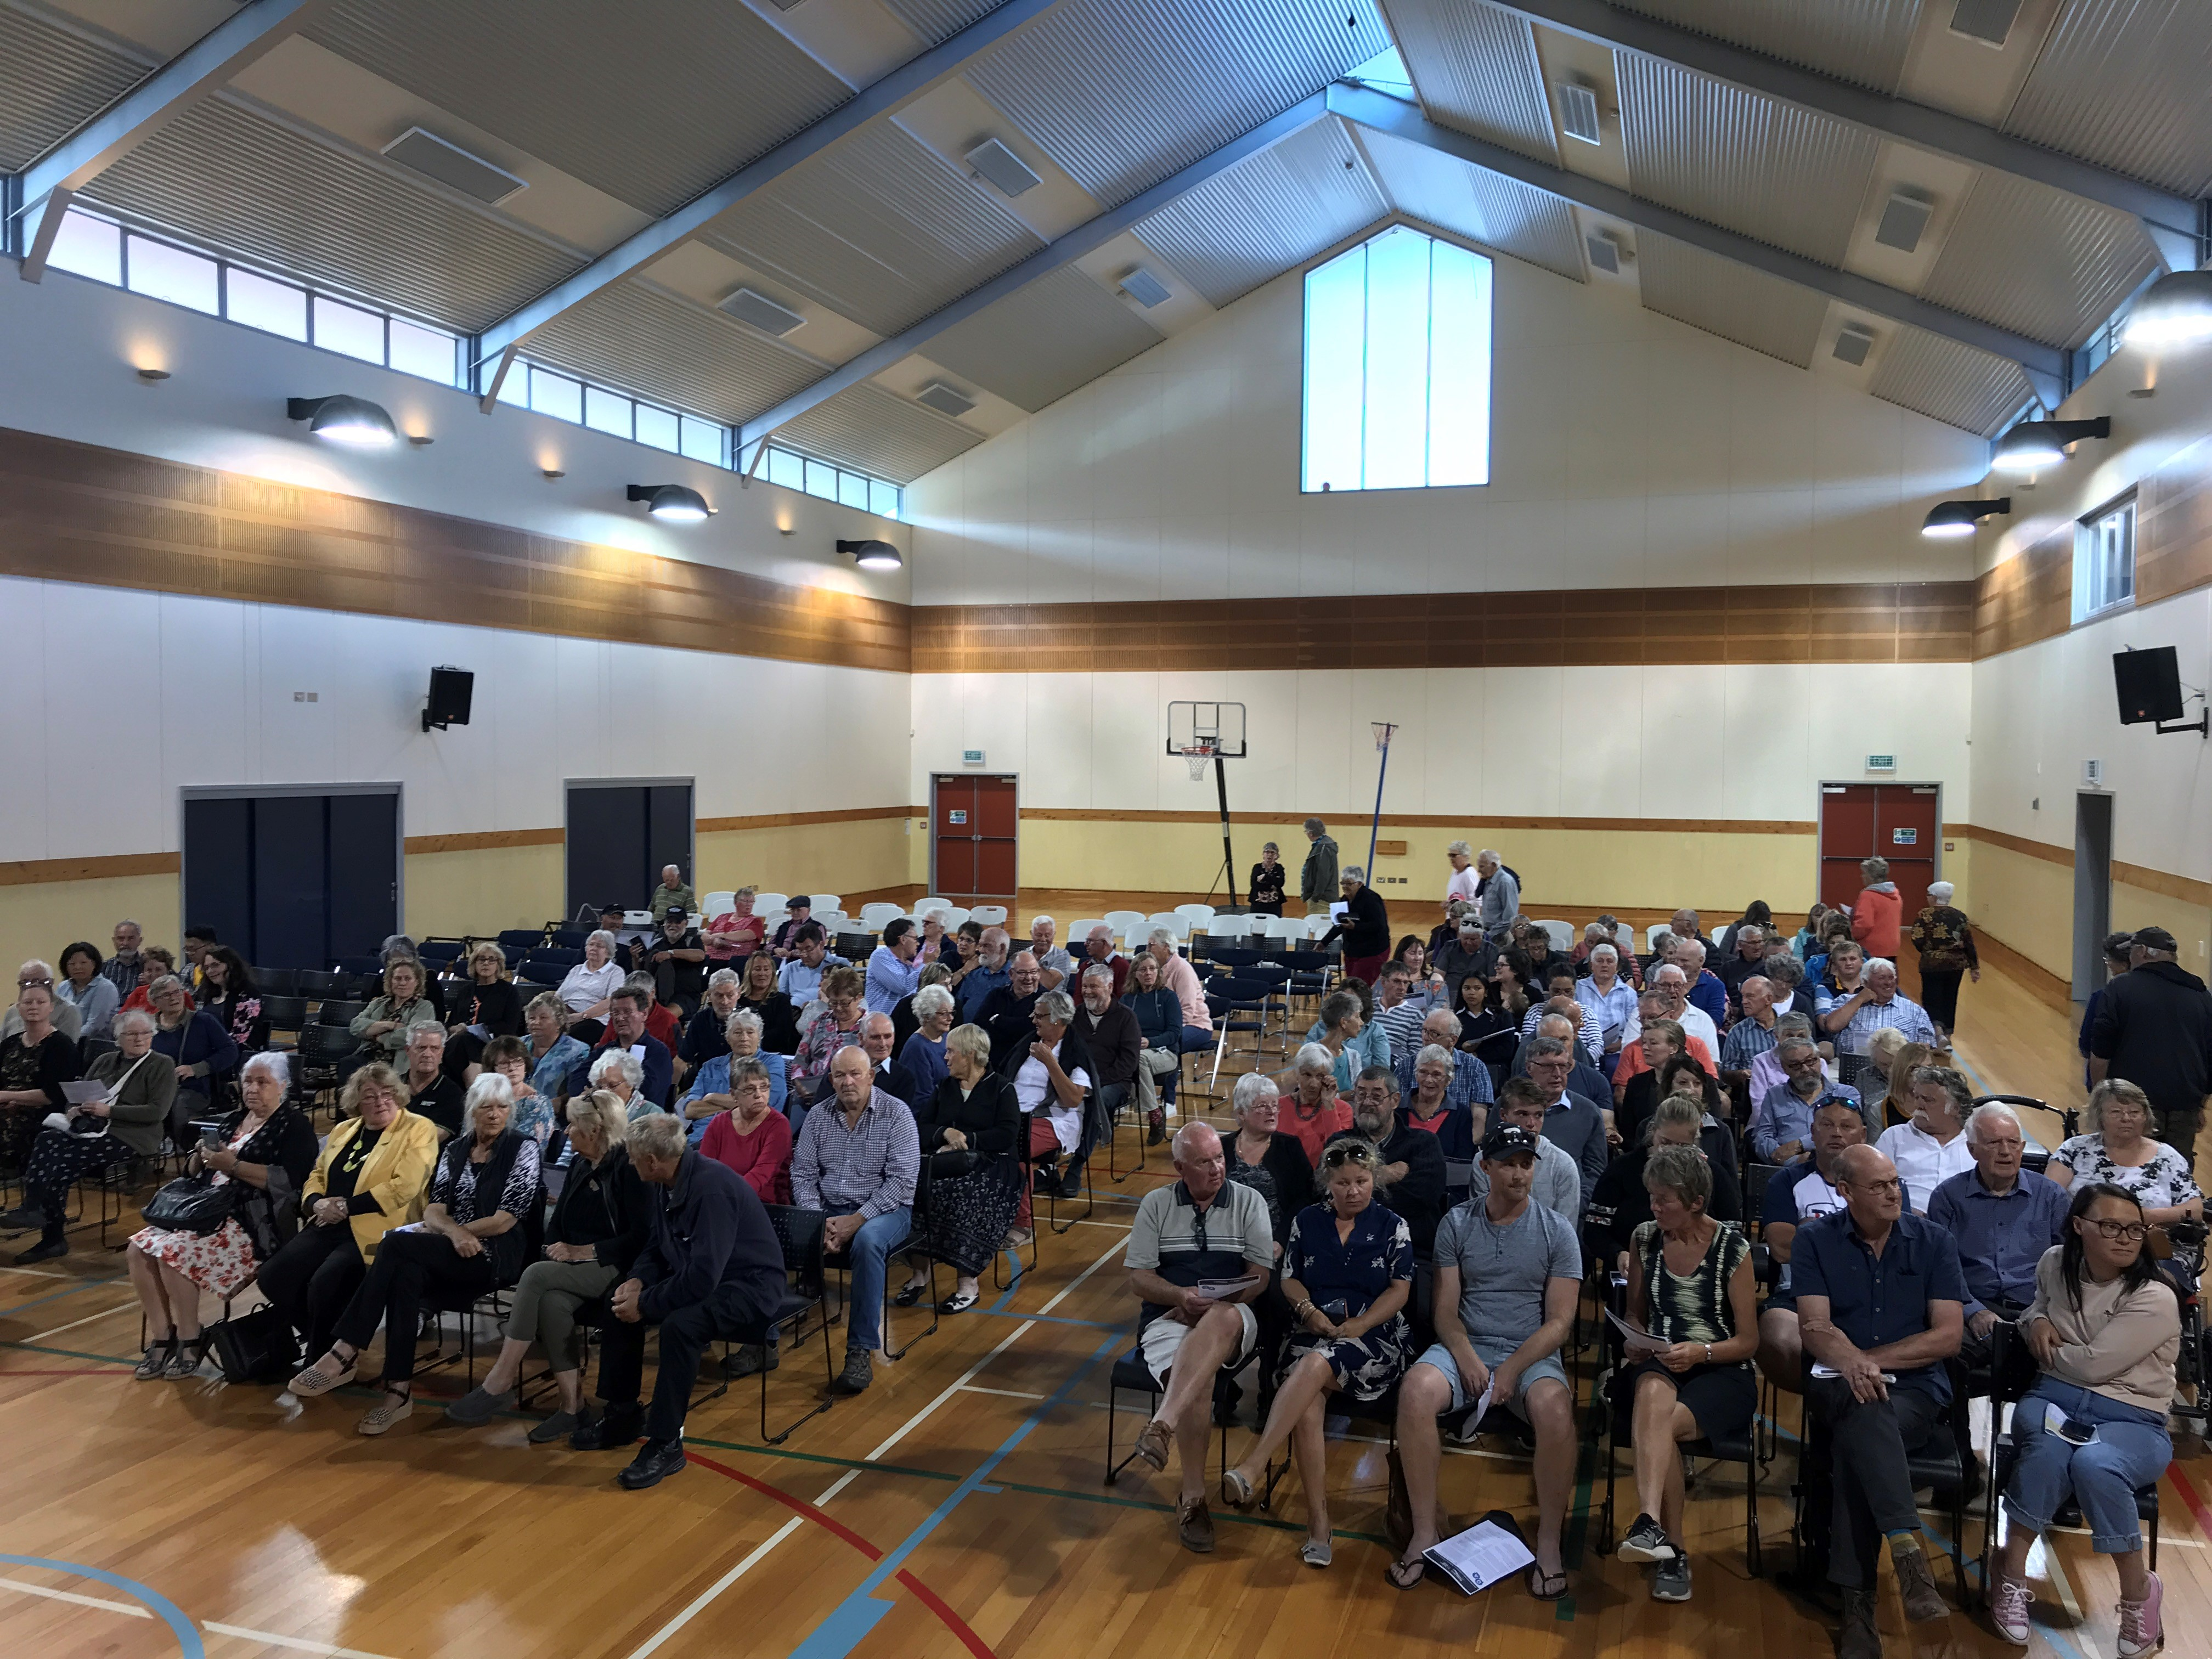 A large group gathered for the meeting in Waikouaiti tonight. Photo: Gregor Richardson